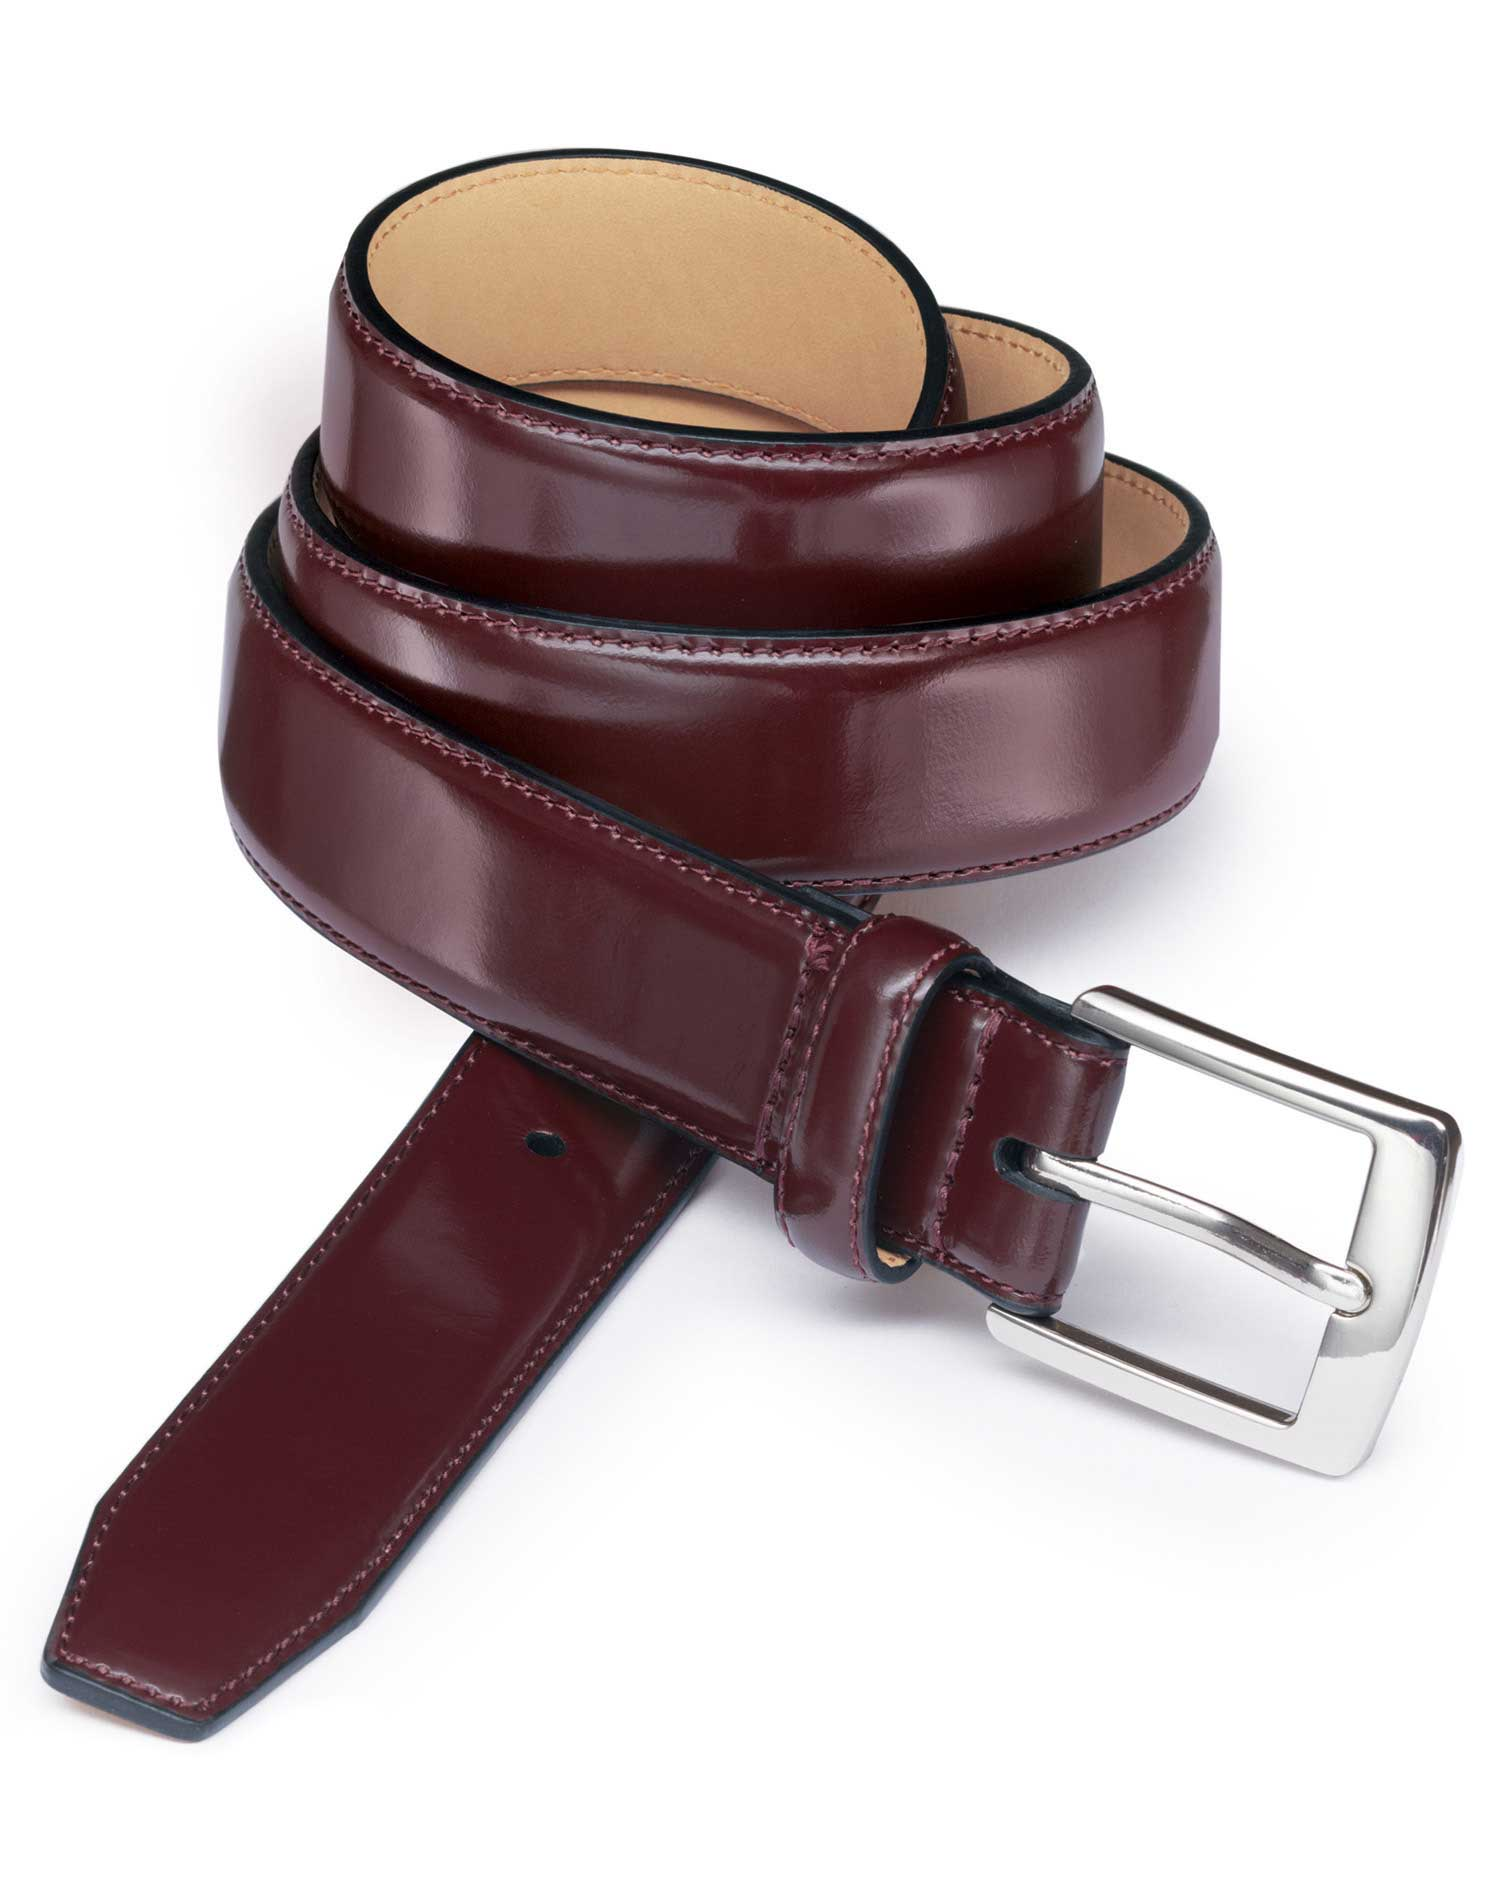 Oxblood Leather Formal Belt Size 38-40 by Charles Tyrwhitt